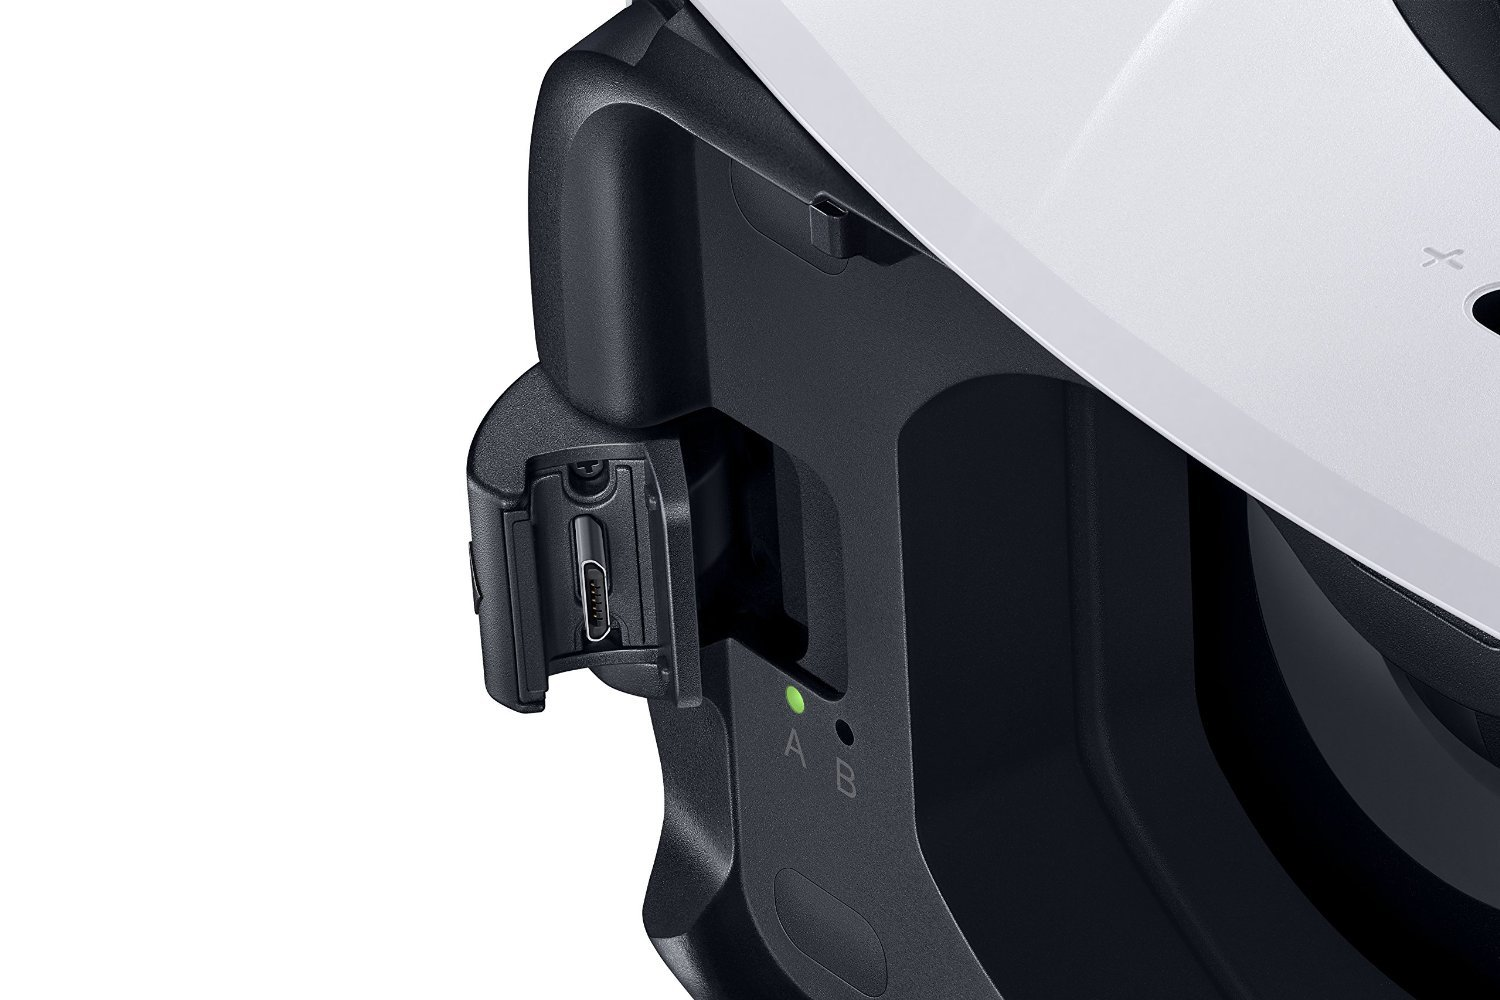 Samsung Gear VR Virtual Reality Headset Black Lightweight Easy to Use Wide FOV by Samsung (Image #5)